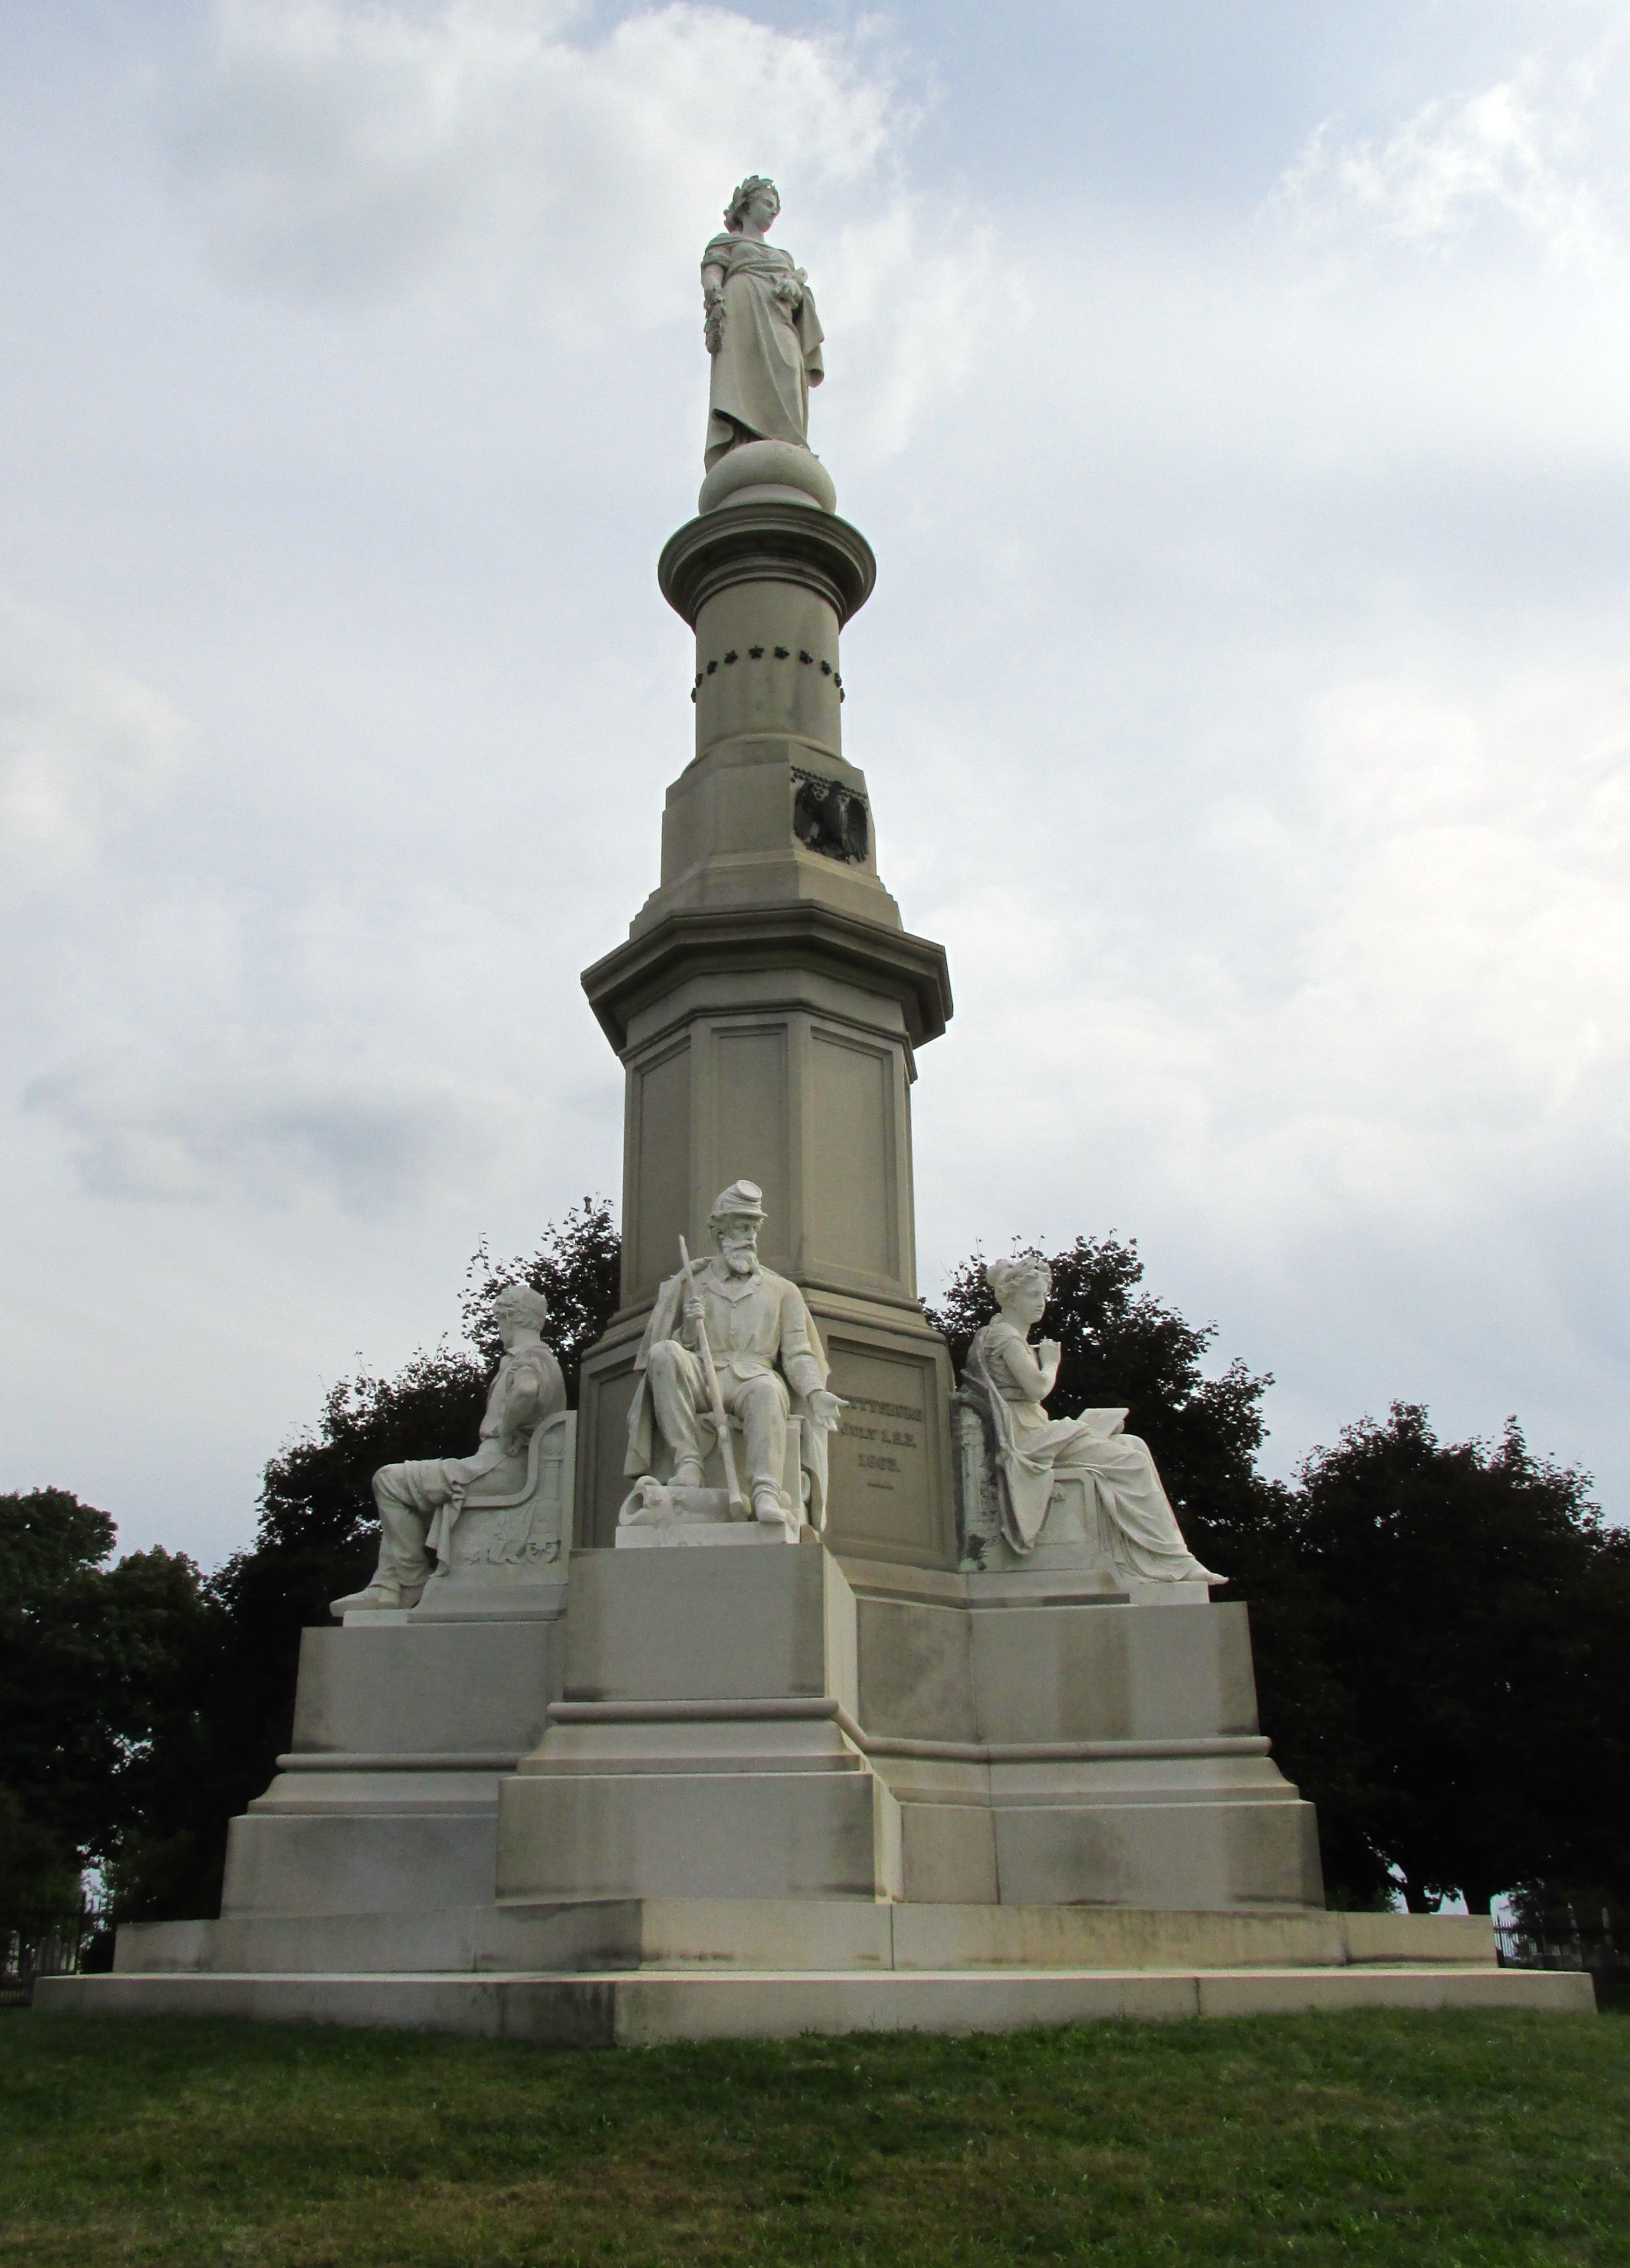 Soldiers National Monument Dedicated July 1, 1869